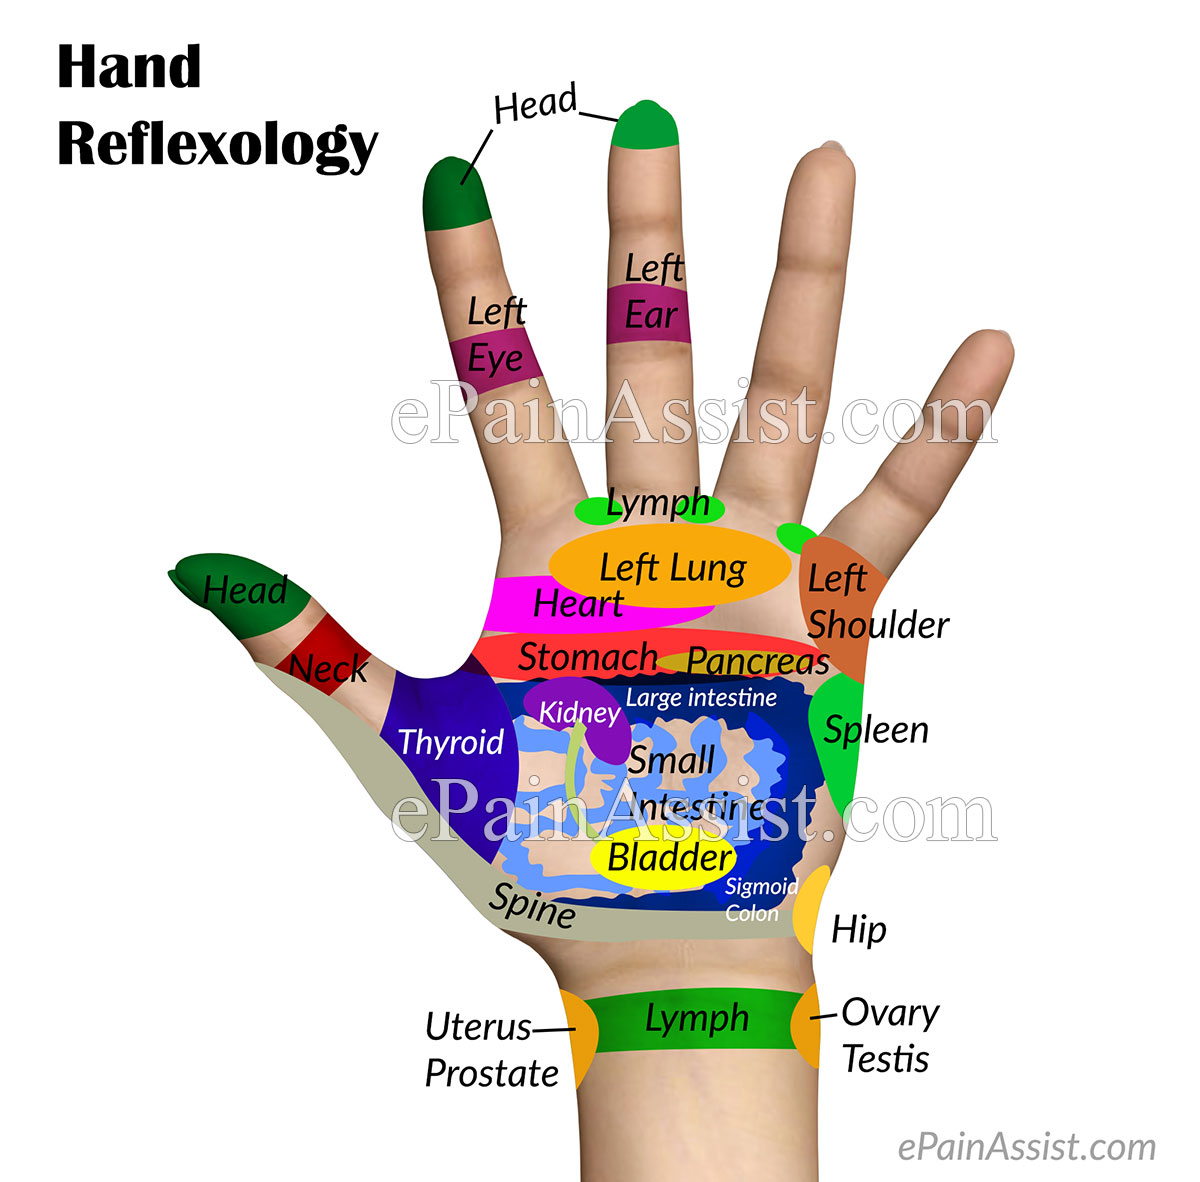 What is Hand Reflexology and What are its Benefits?